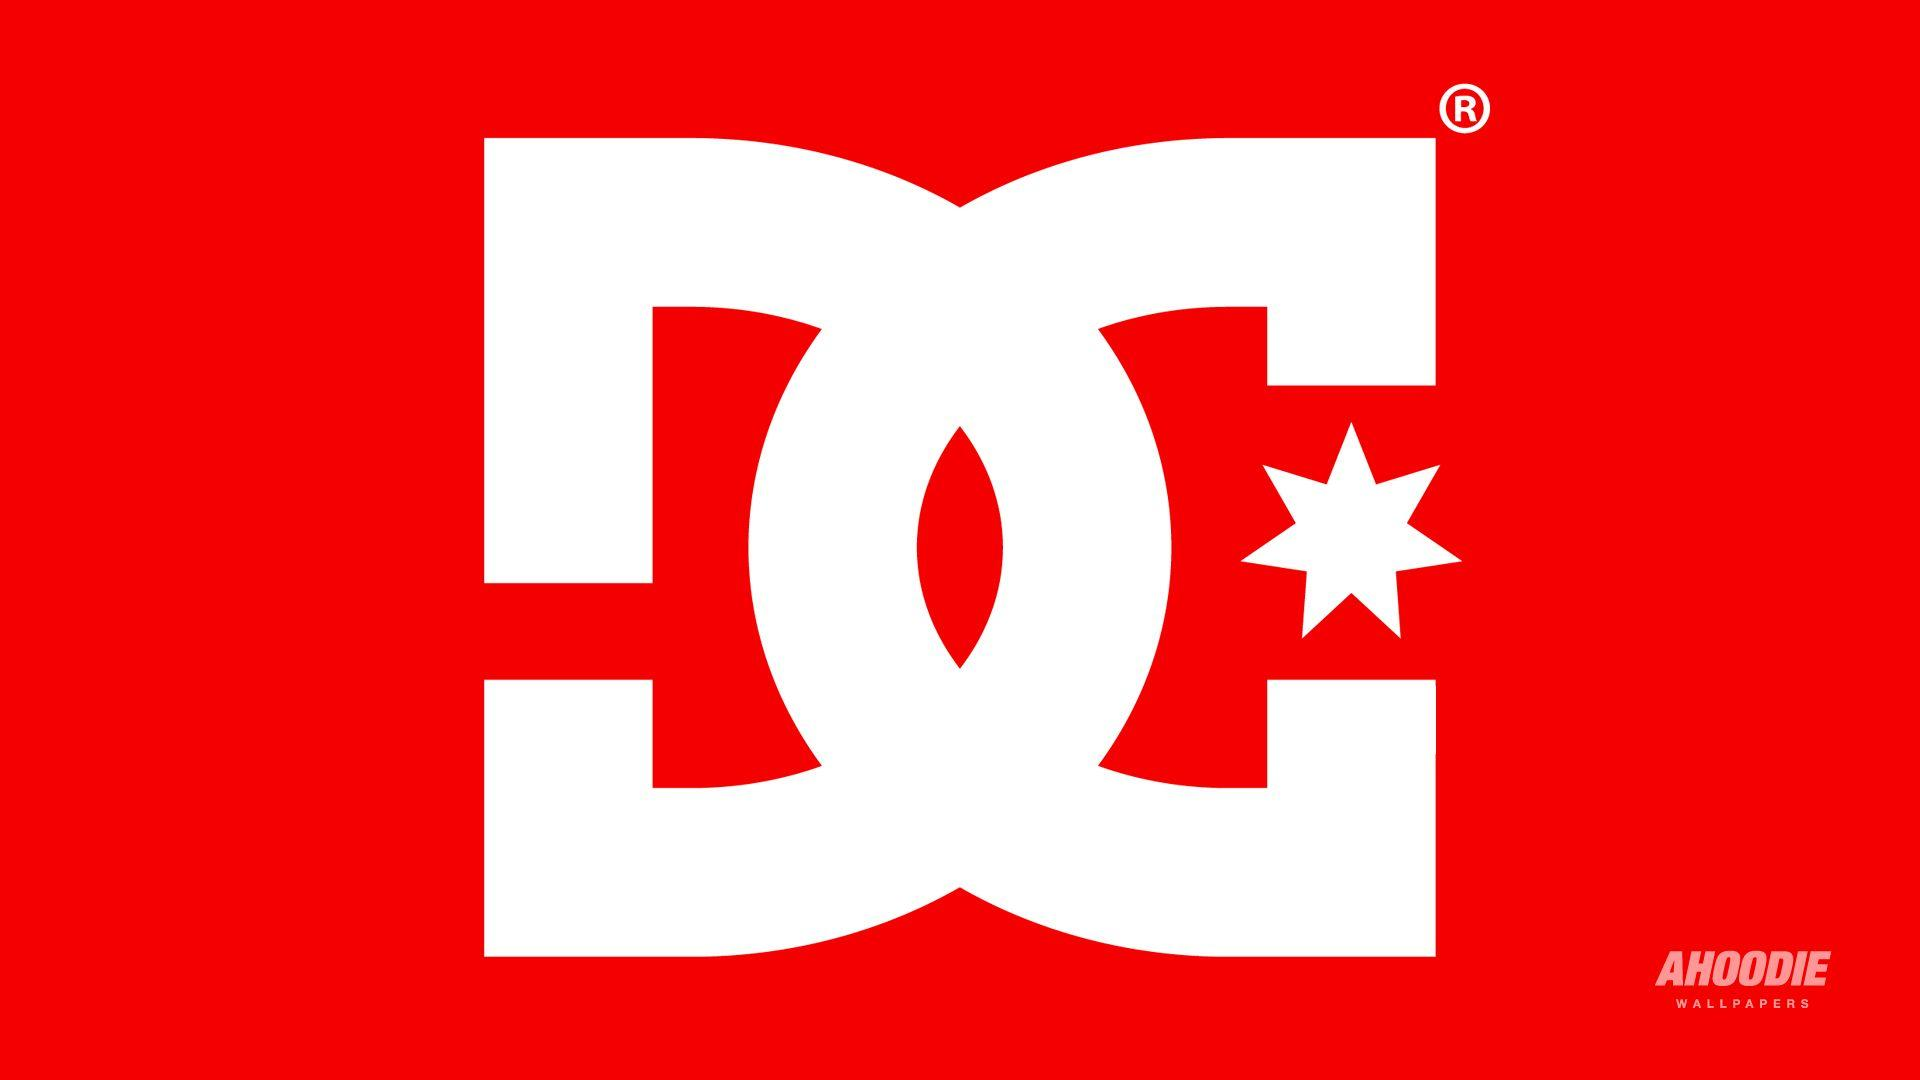 dc shoes logo wallpapers wallpaper cave rh wallpapercave com  logos dcshoecousa